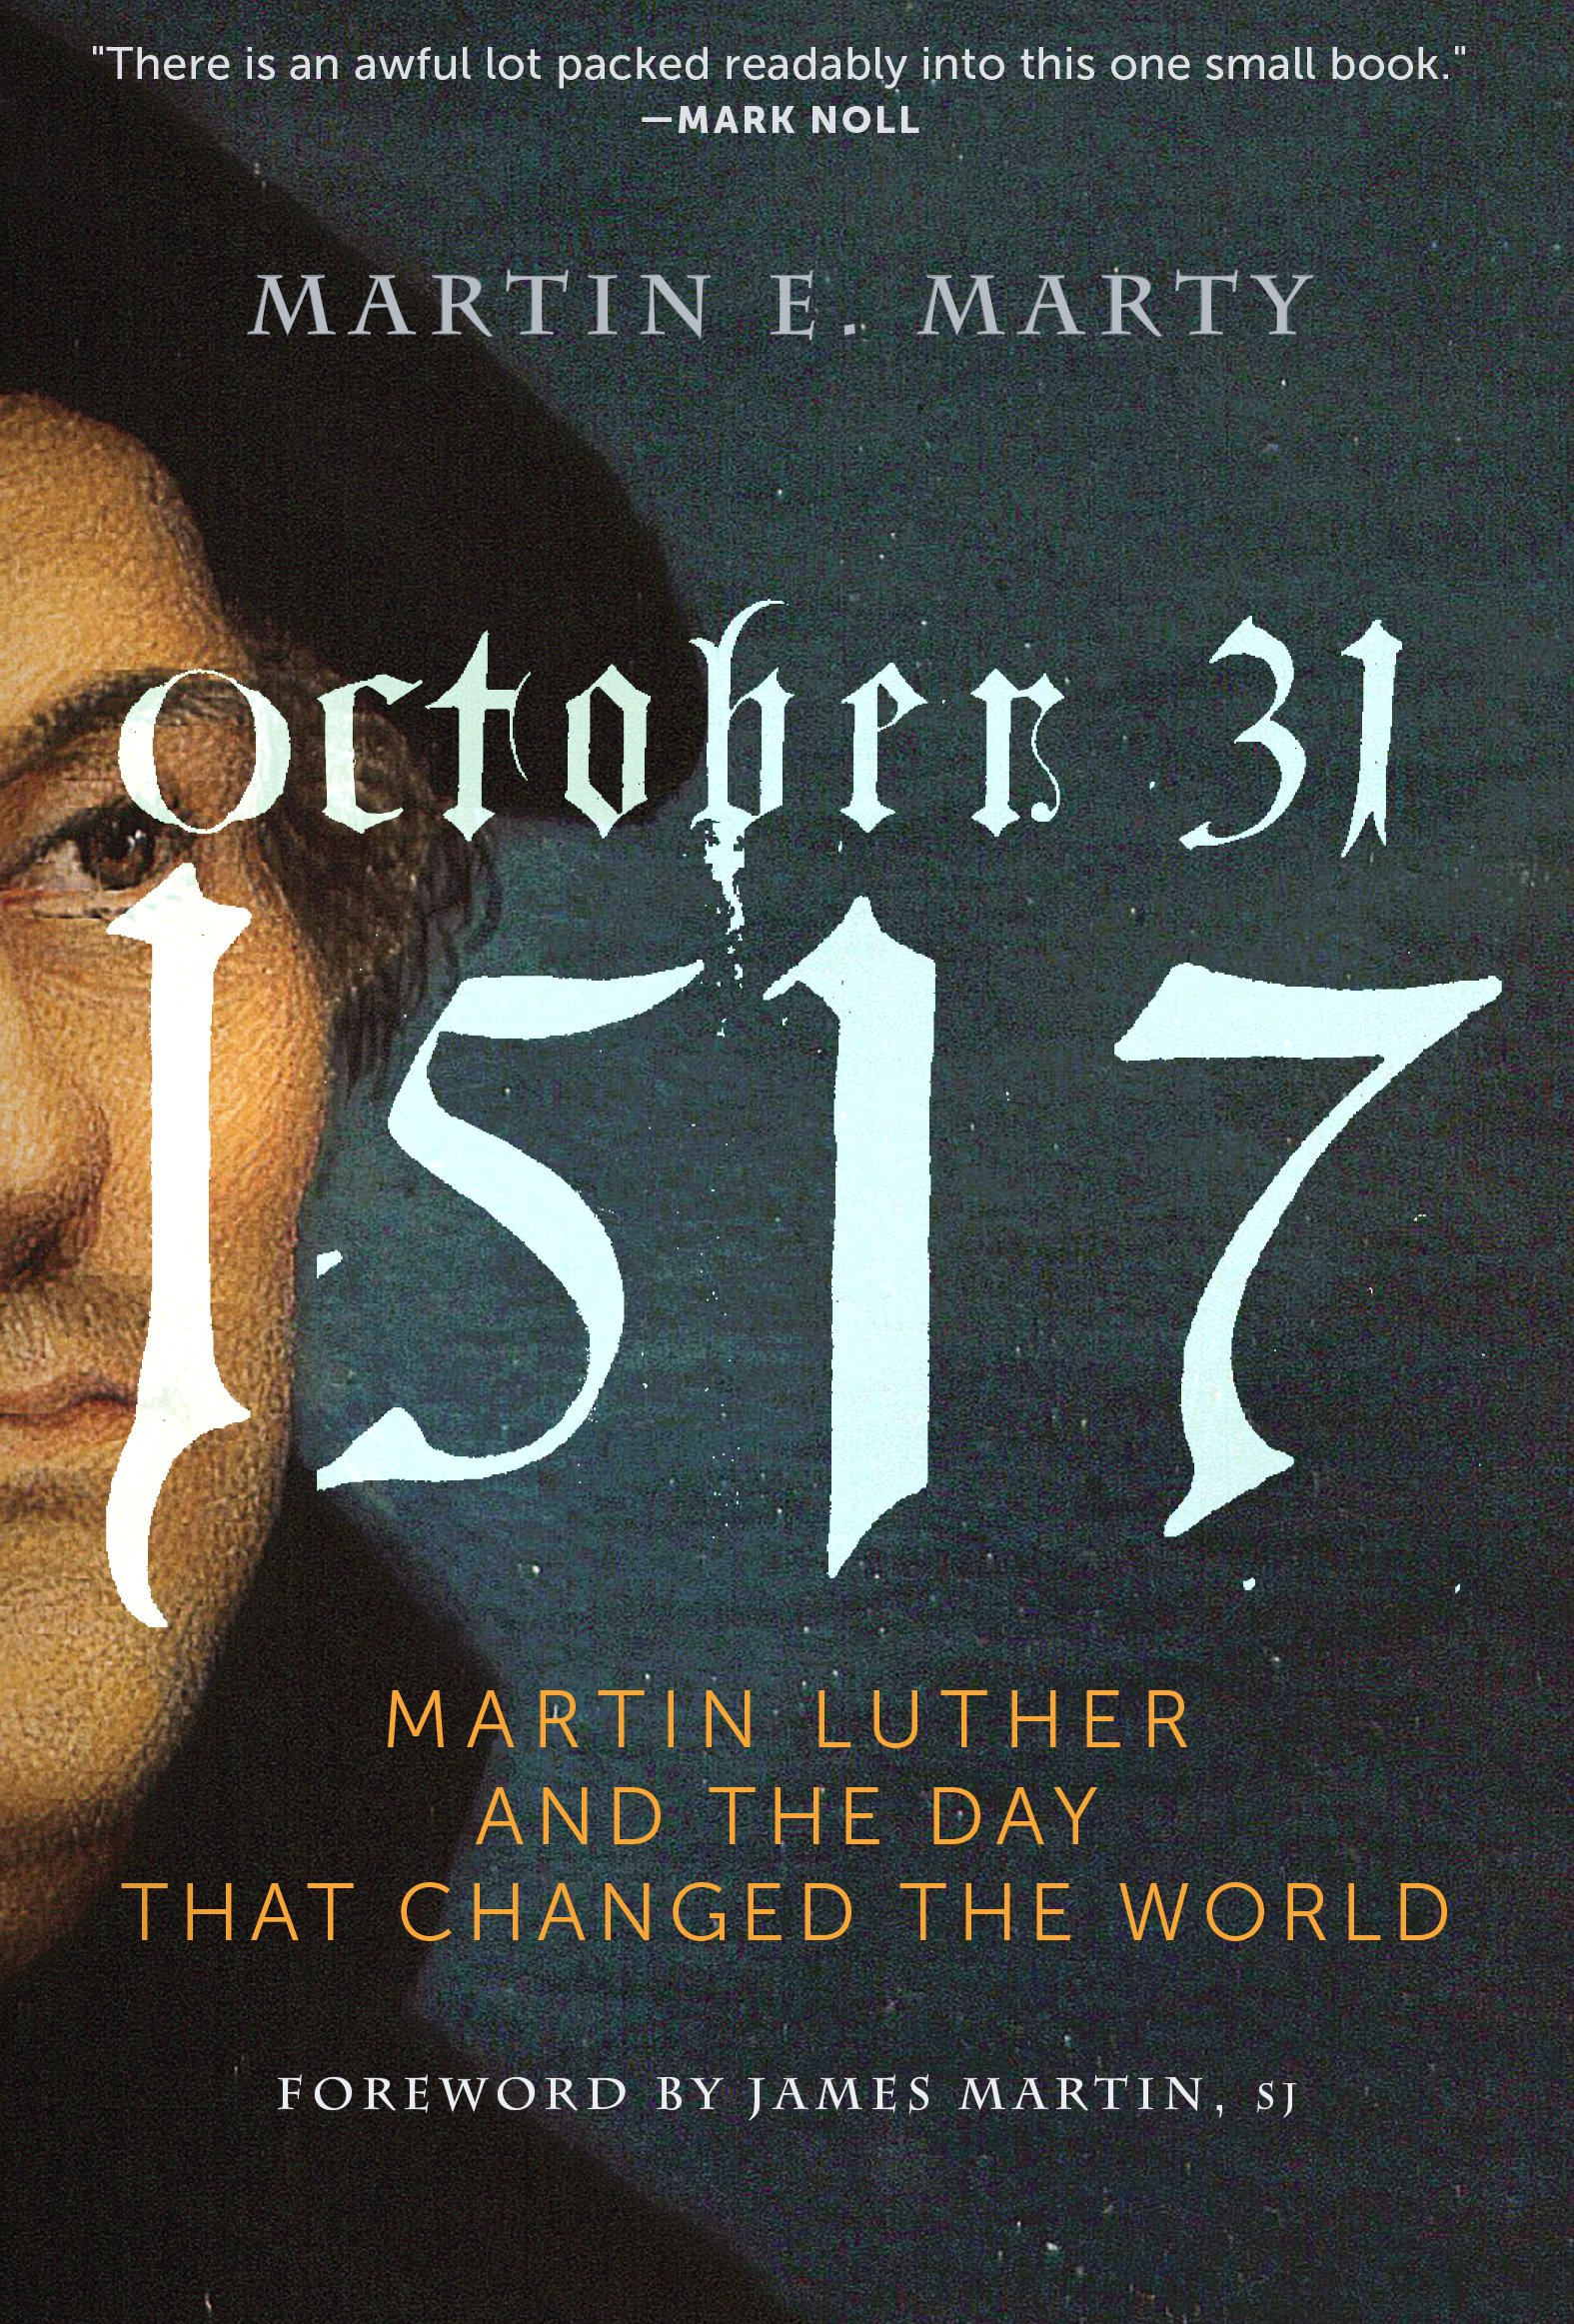 October 31, 1517: Martin Luther and the Day that Changed the World: Martin  E. Marty, James Martin SJ: 9781612616568: Amazon.com: Books